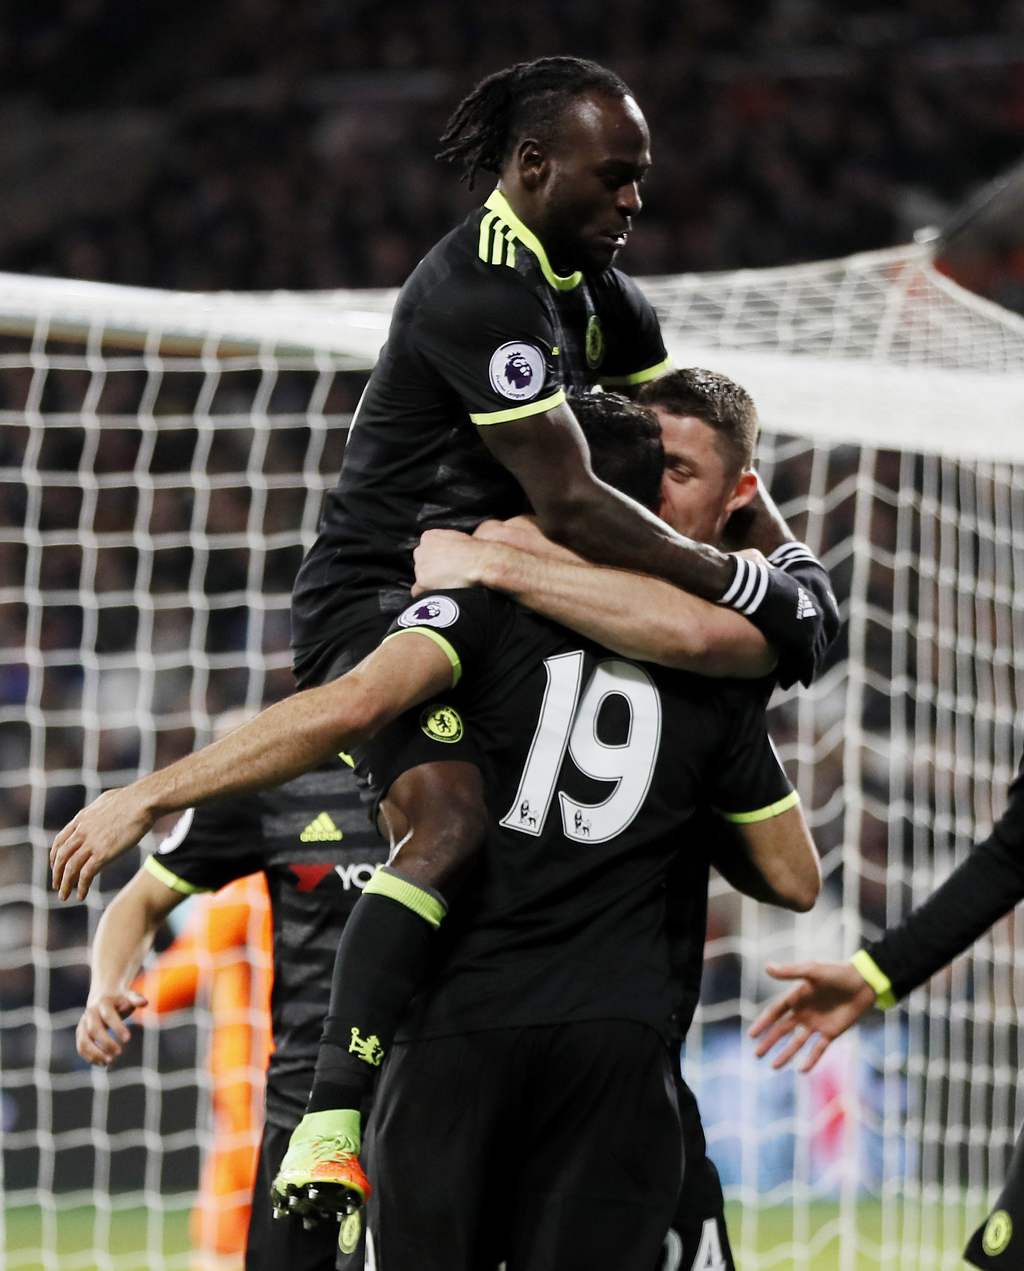 Chelsea's Diego Costa , 19, is congratulated by teammates after scoring a goal during the English Premier League soccer match between W...